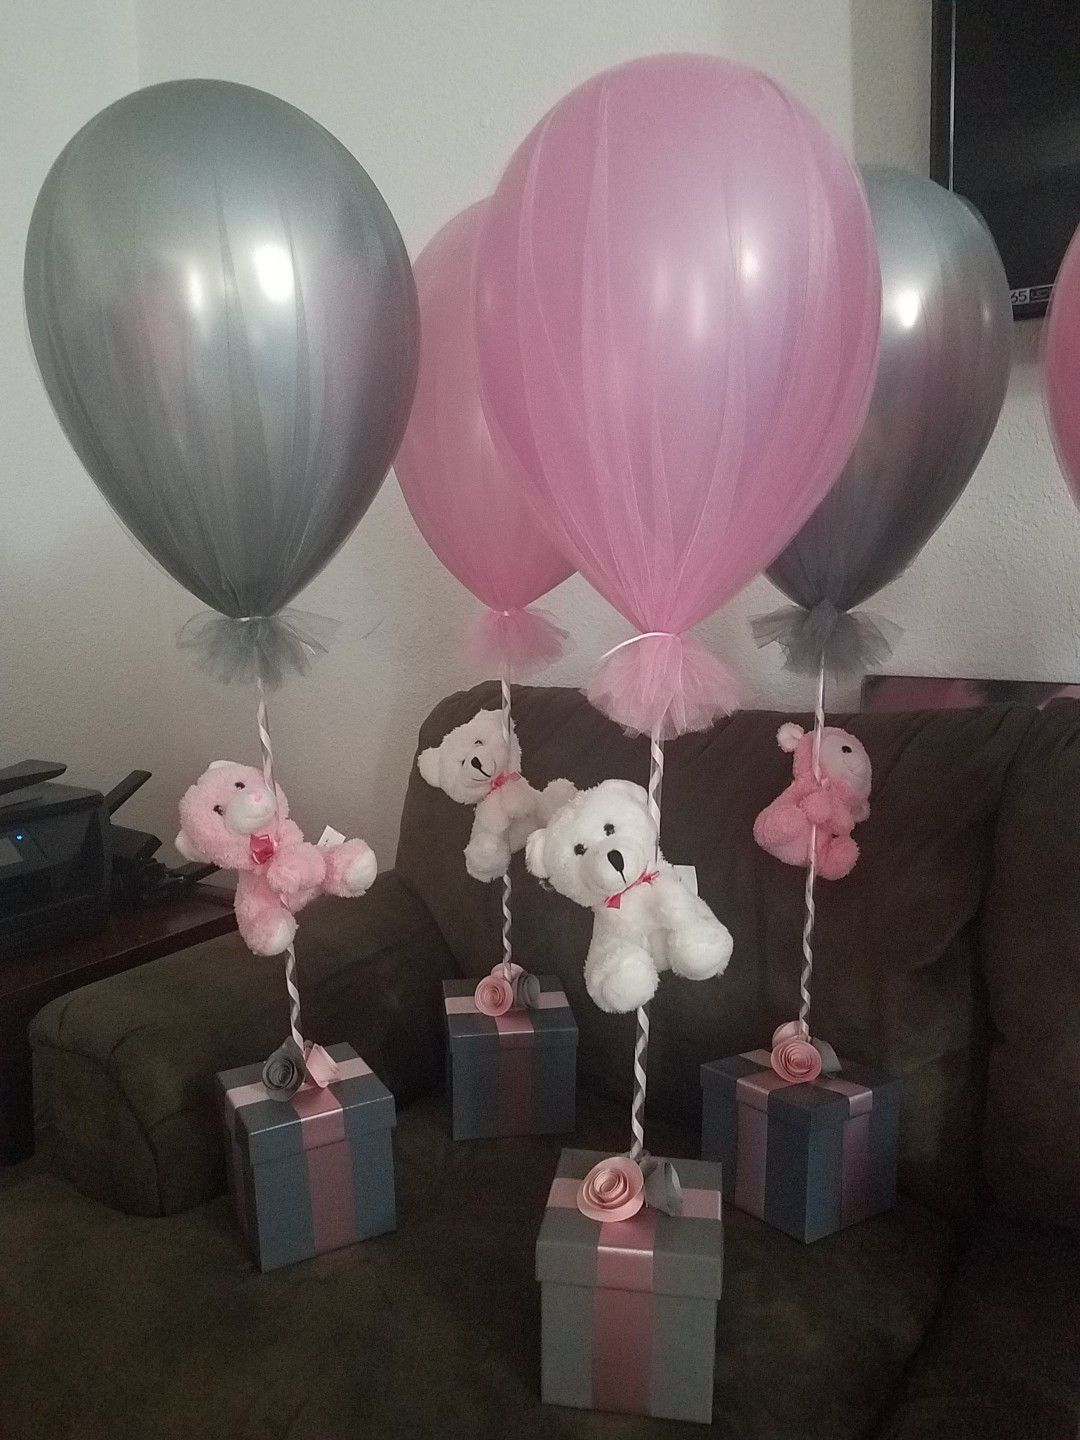 Cute And Very Inexpensive Made 20 Bears And Gift Boxes From Dollar